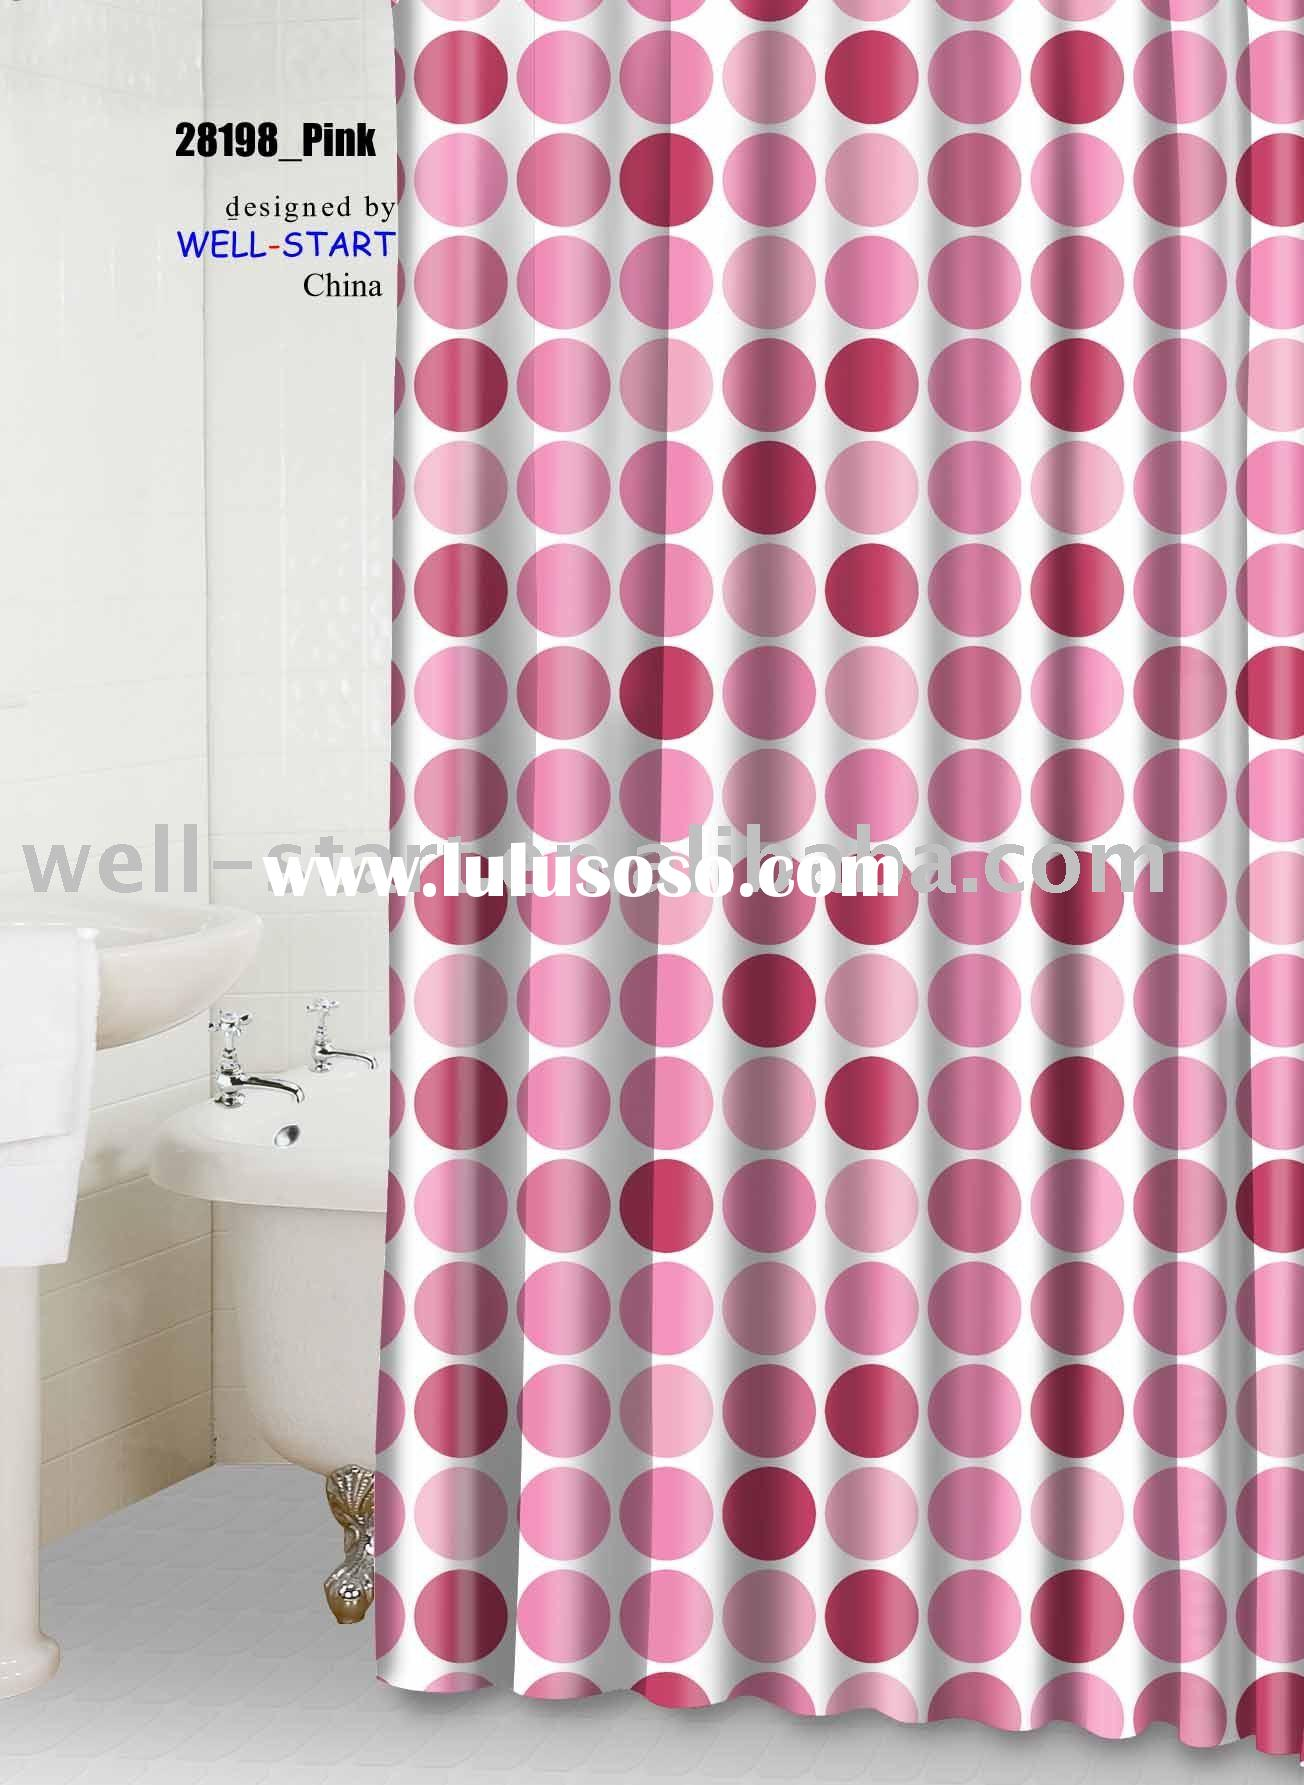 multi color dots_pink printed polyester fabric shower curtain